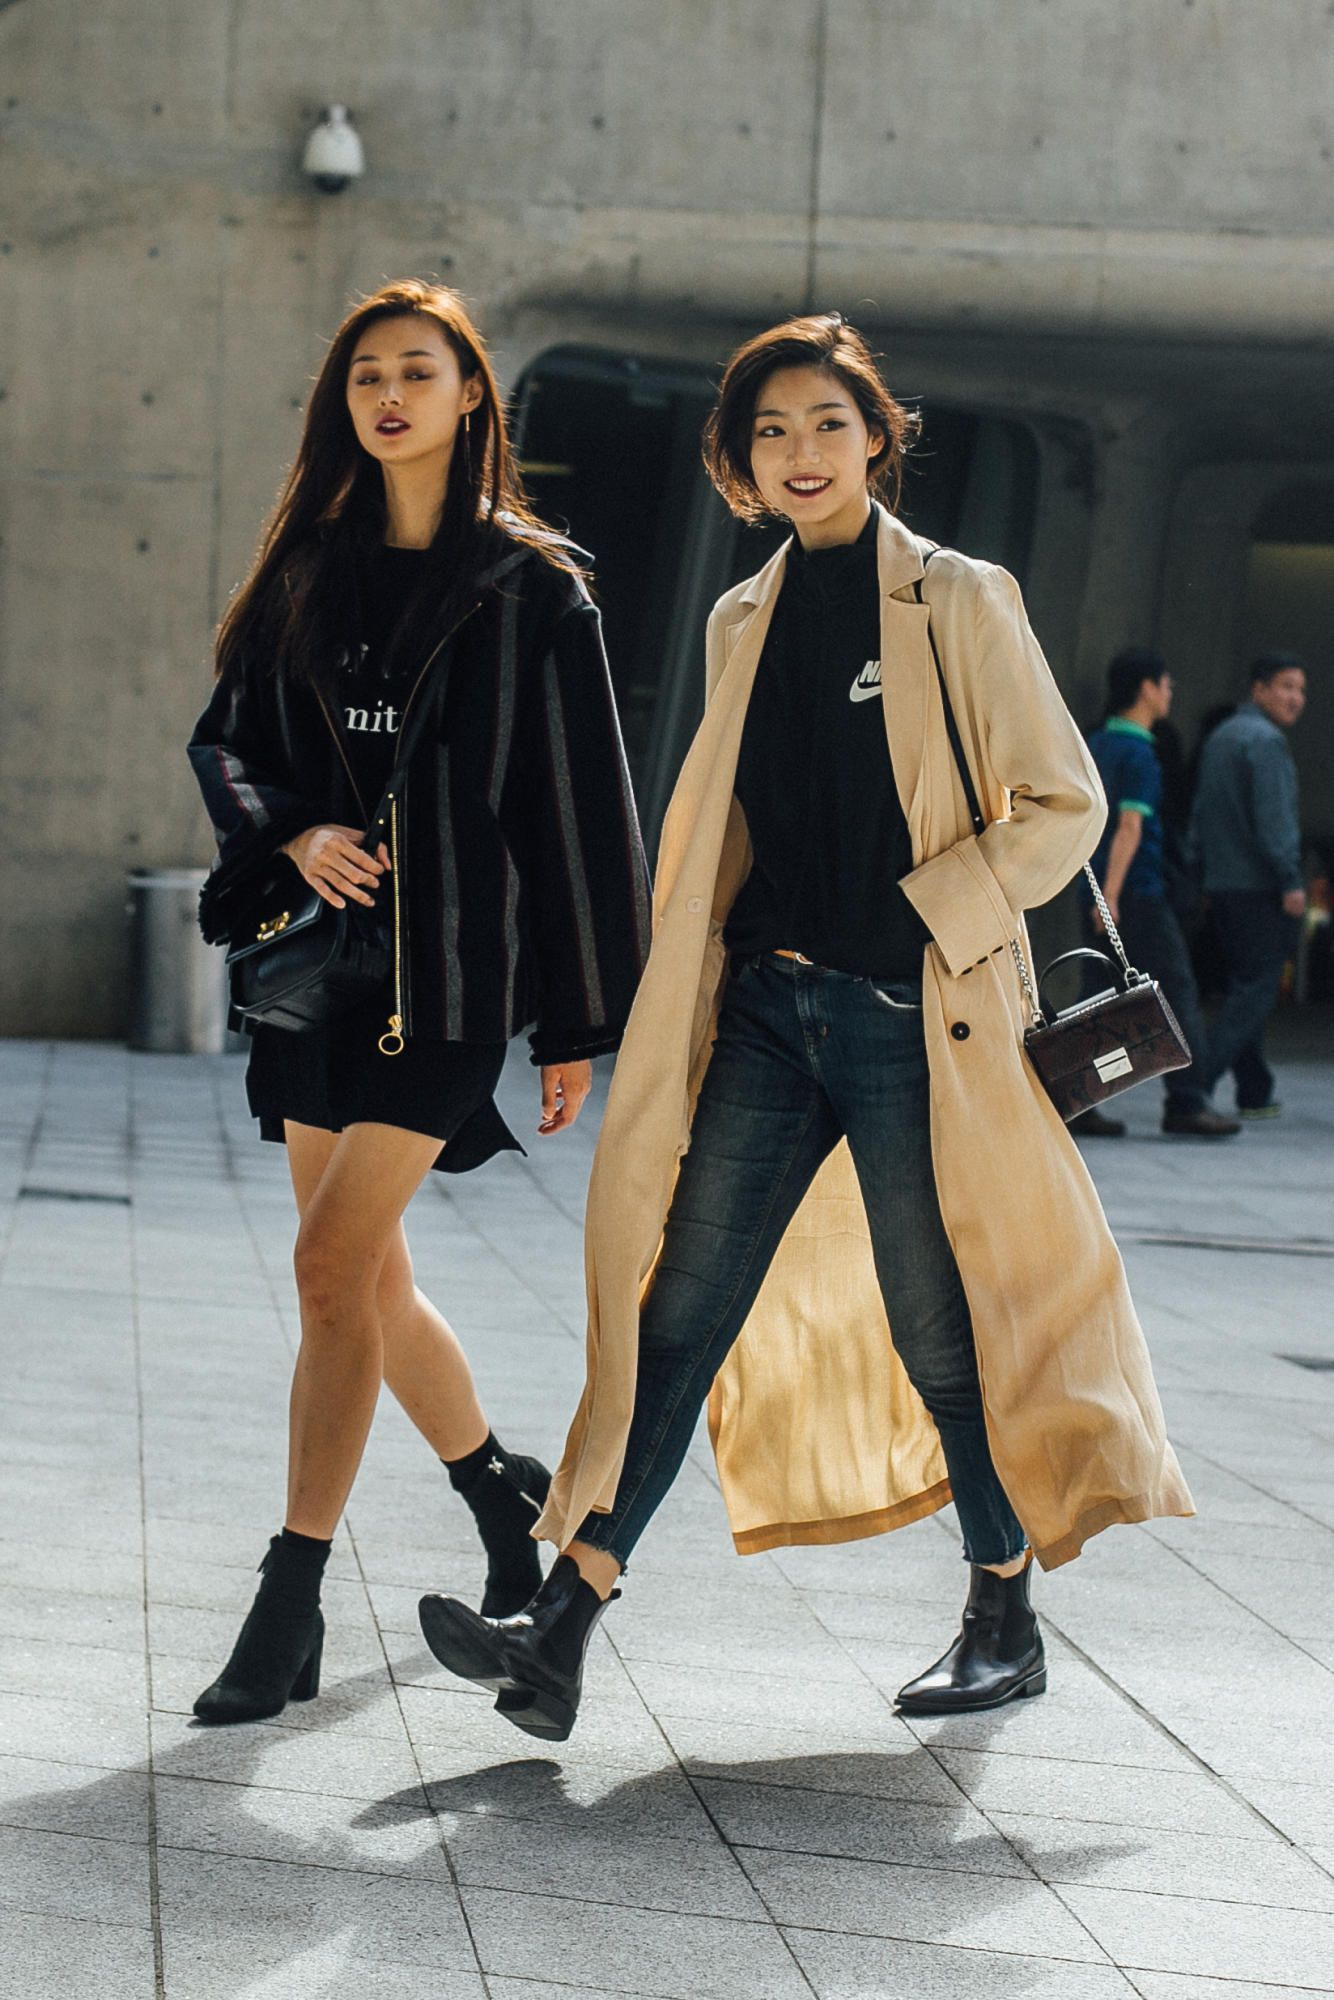 Matching Outfits Were the Street Style Uniform at Seoul Fashion